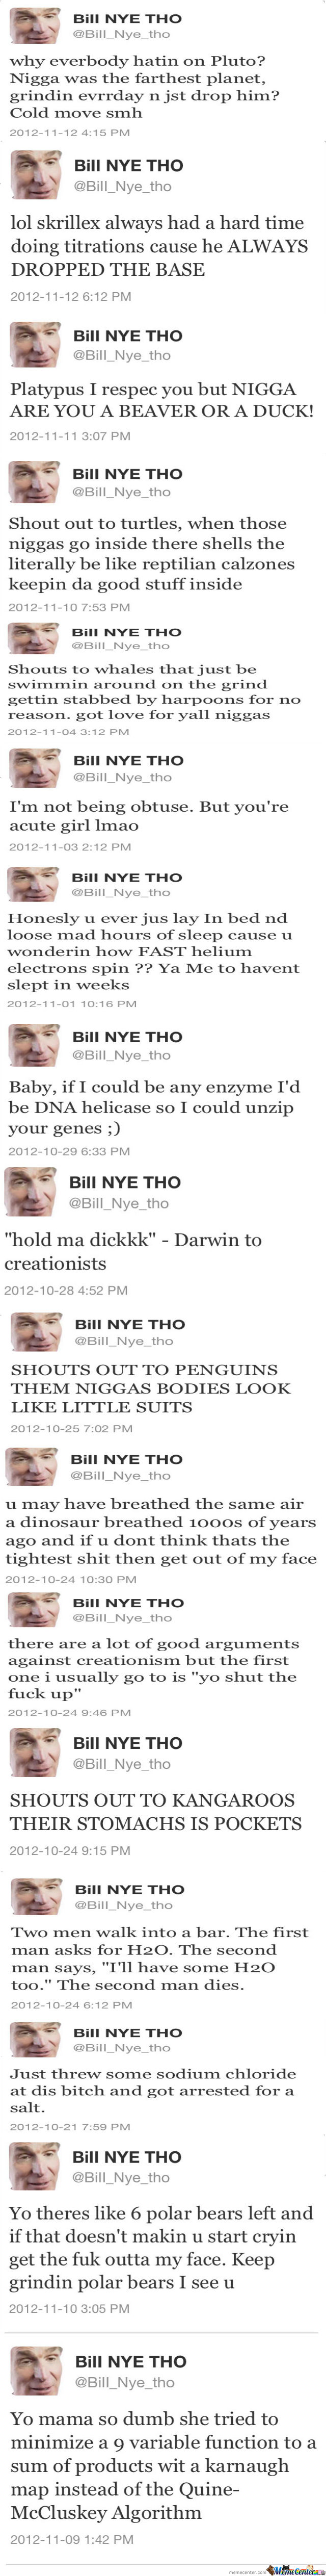 Gangster Bill Nye Twitter Account Compilation